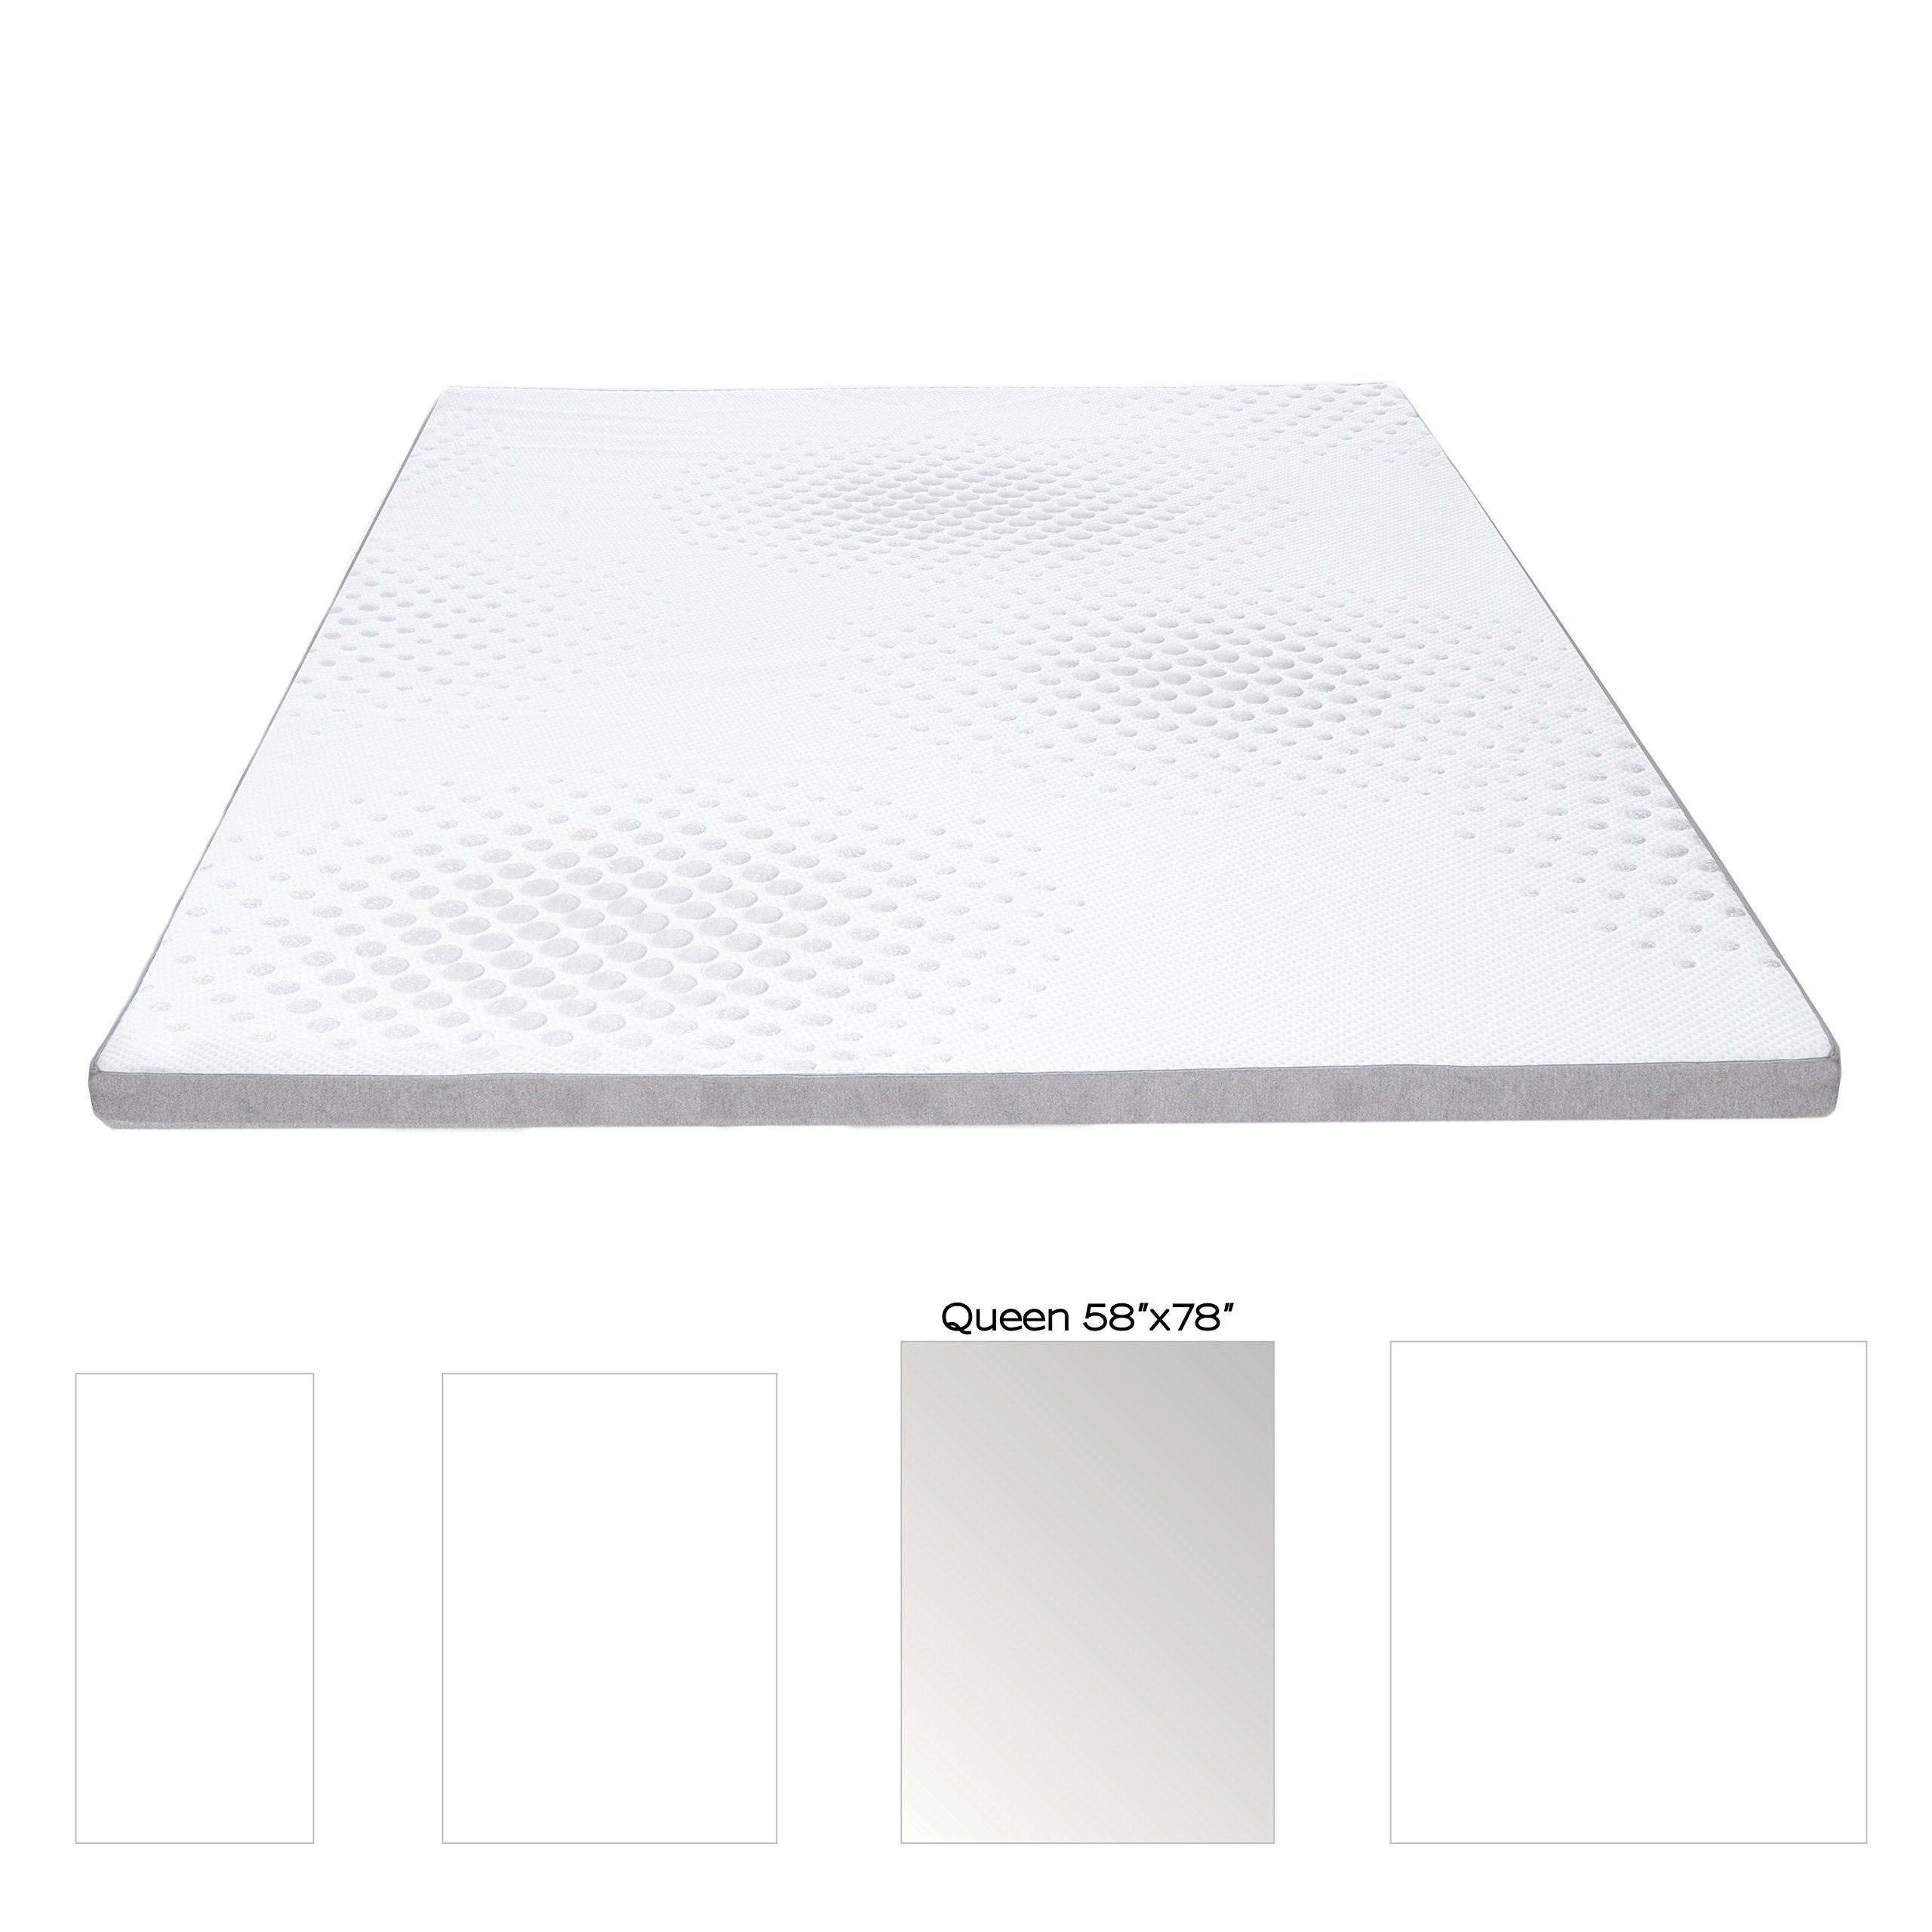 Milliard 2-Inch Gel Memory Foam Mattress Topper - Featuring a Removable and Washable Soft Bamboo Cover - Queen - 78''x58''x2""